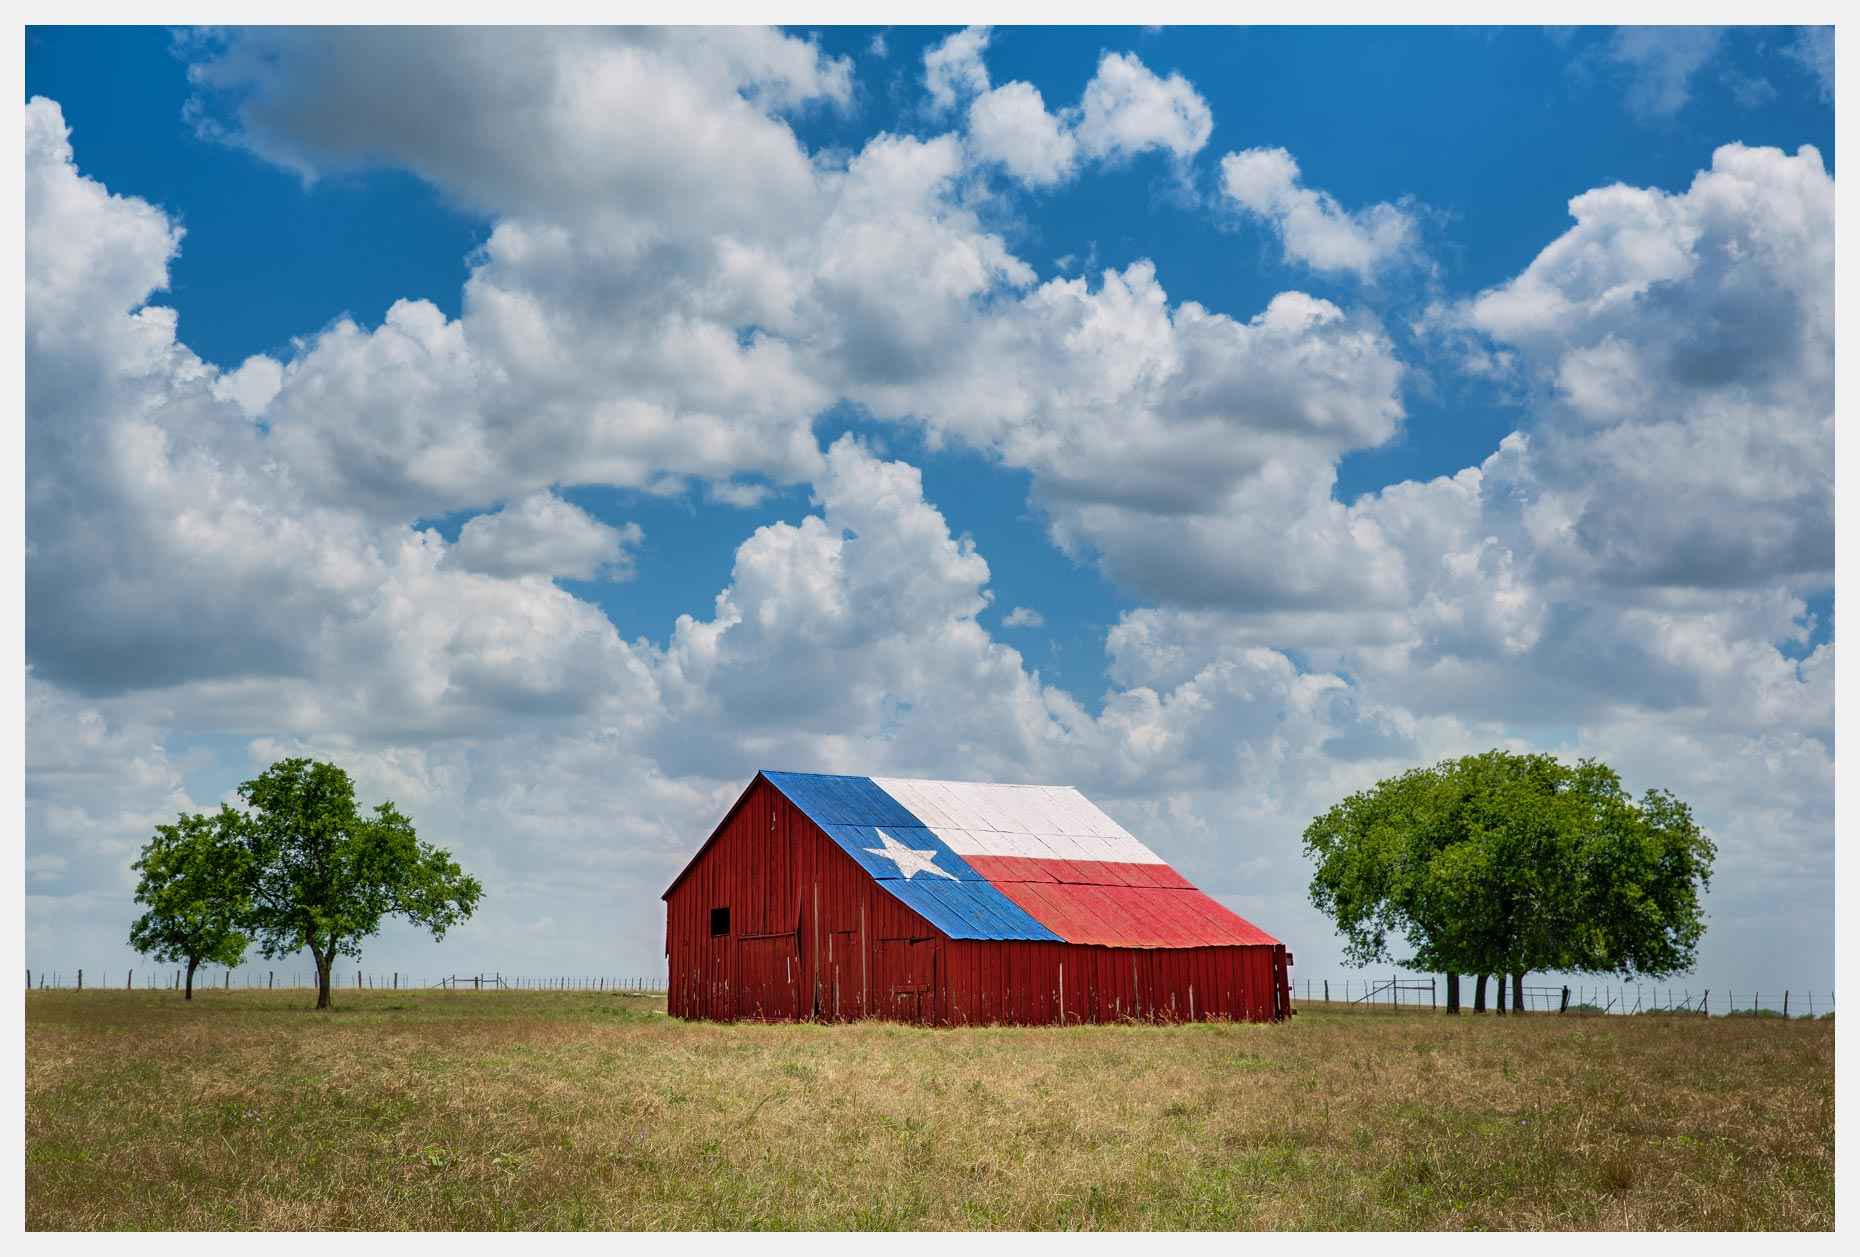 Texas Barn With Lone Star Flag and White Clouds